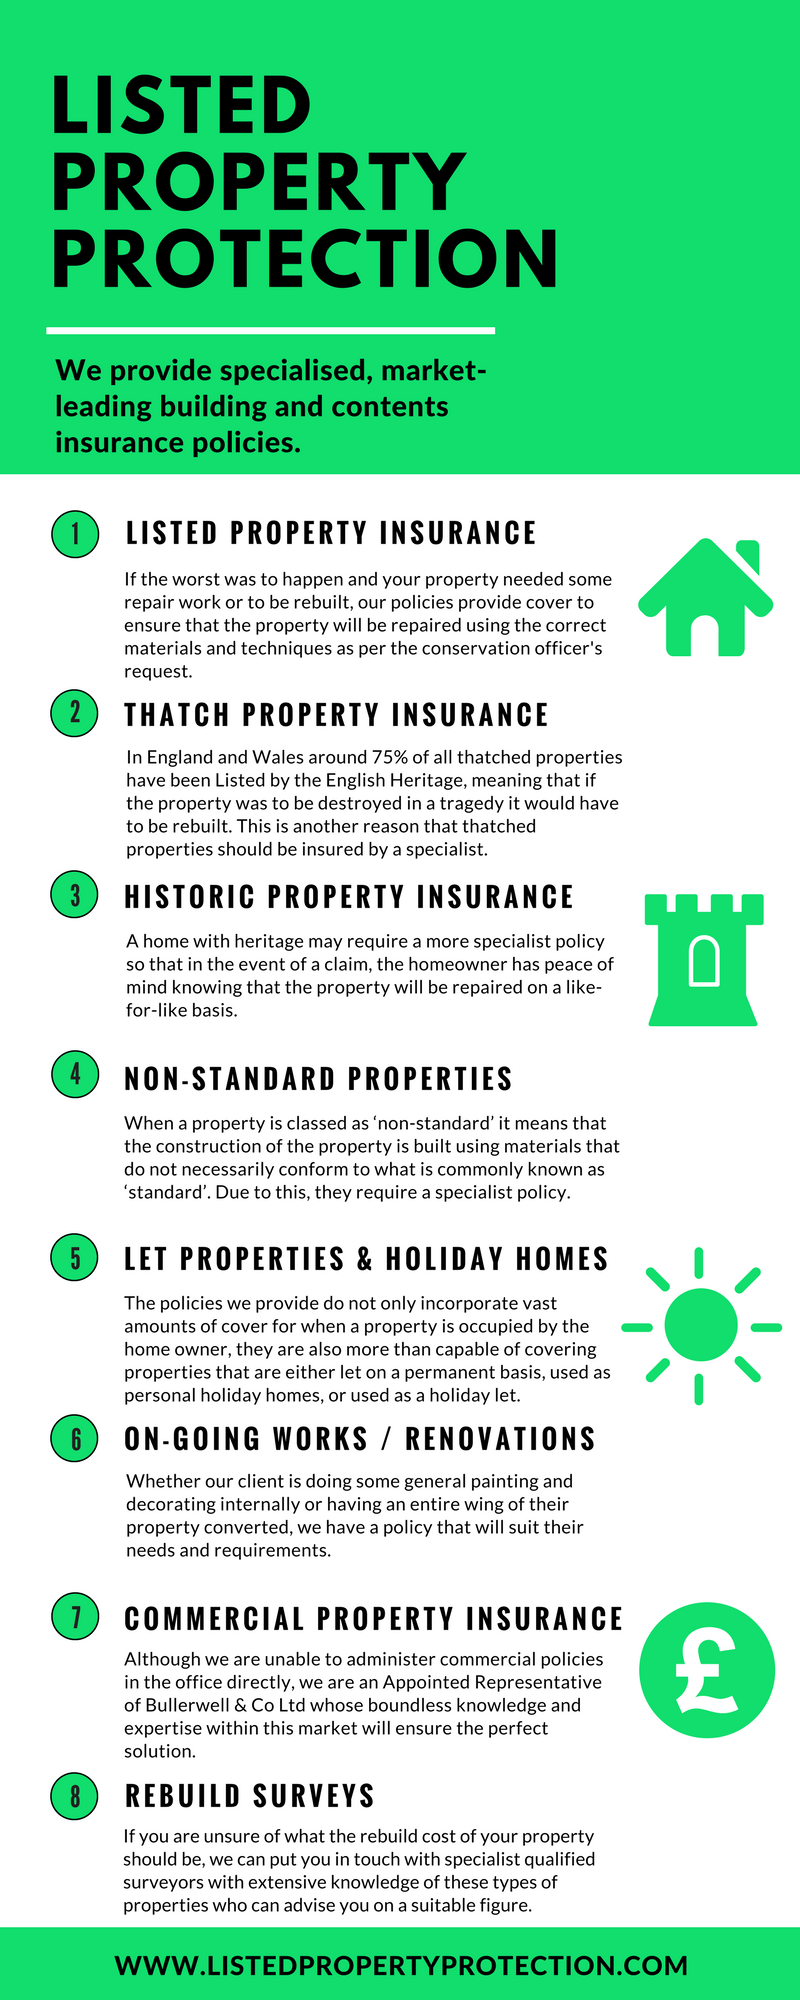 Listed Property Protection: Types of Specialist Insurance